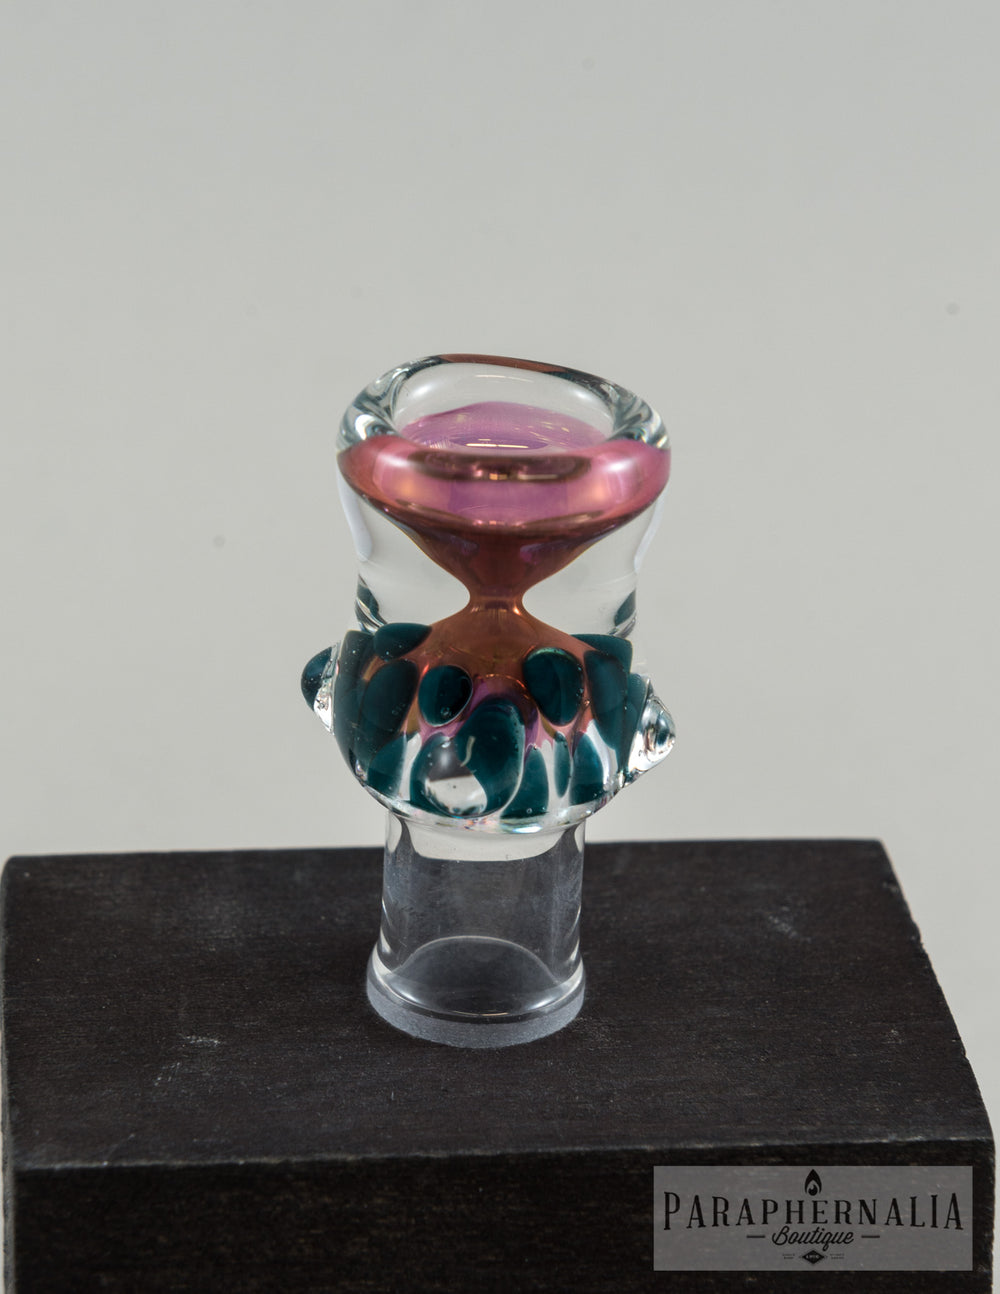 14mm Gold or Silver Fume Flower Bowl - Medium